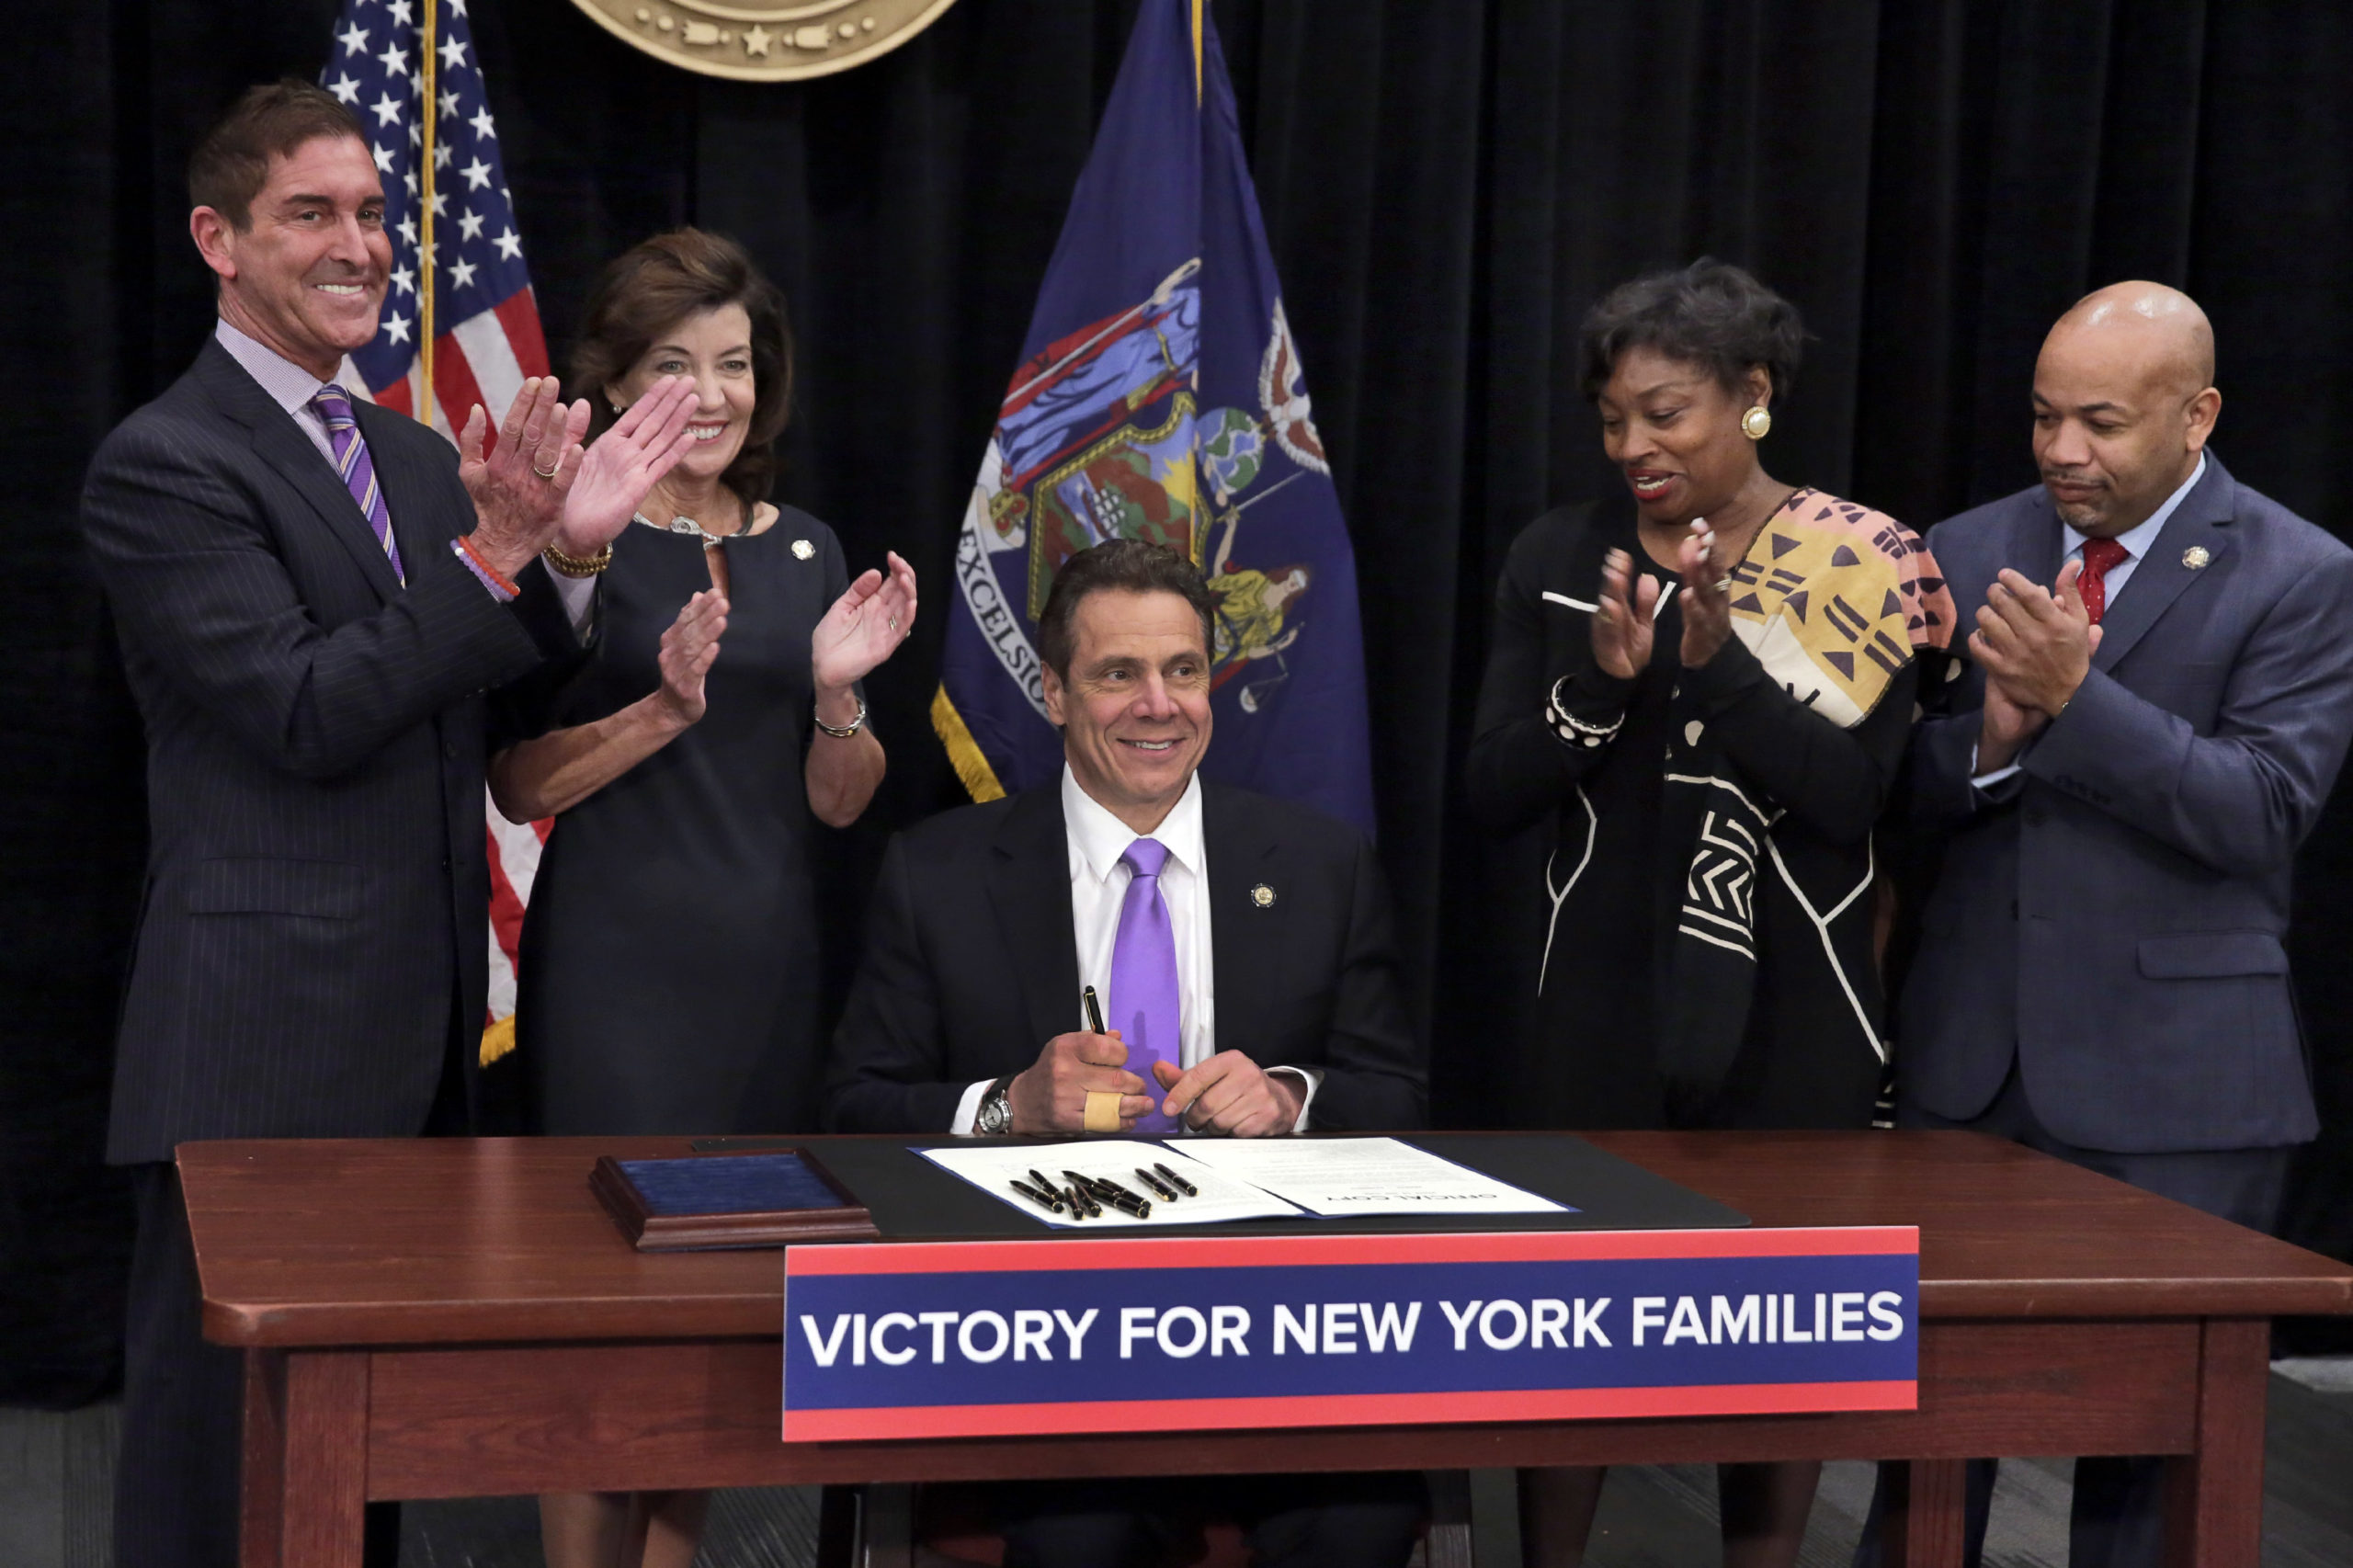 New York Gov. Andrew Cuomo, center, is applauded after he signed a law that will gradually raise New York's minimum wage to $15 on April 4, 2016. Standing, left to right, are New York state Sen. Jeffrey Klein, New York Lt. Gov. Kathy Hochul, New York state Sen. Andrea Stewart-Cousins, and New York state Assembly Speaker Carl Heastie. (Richard Drew-Pool/Getty Images)